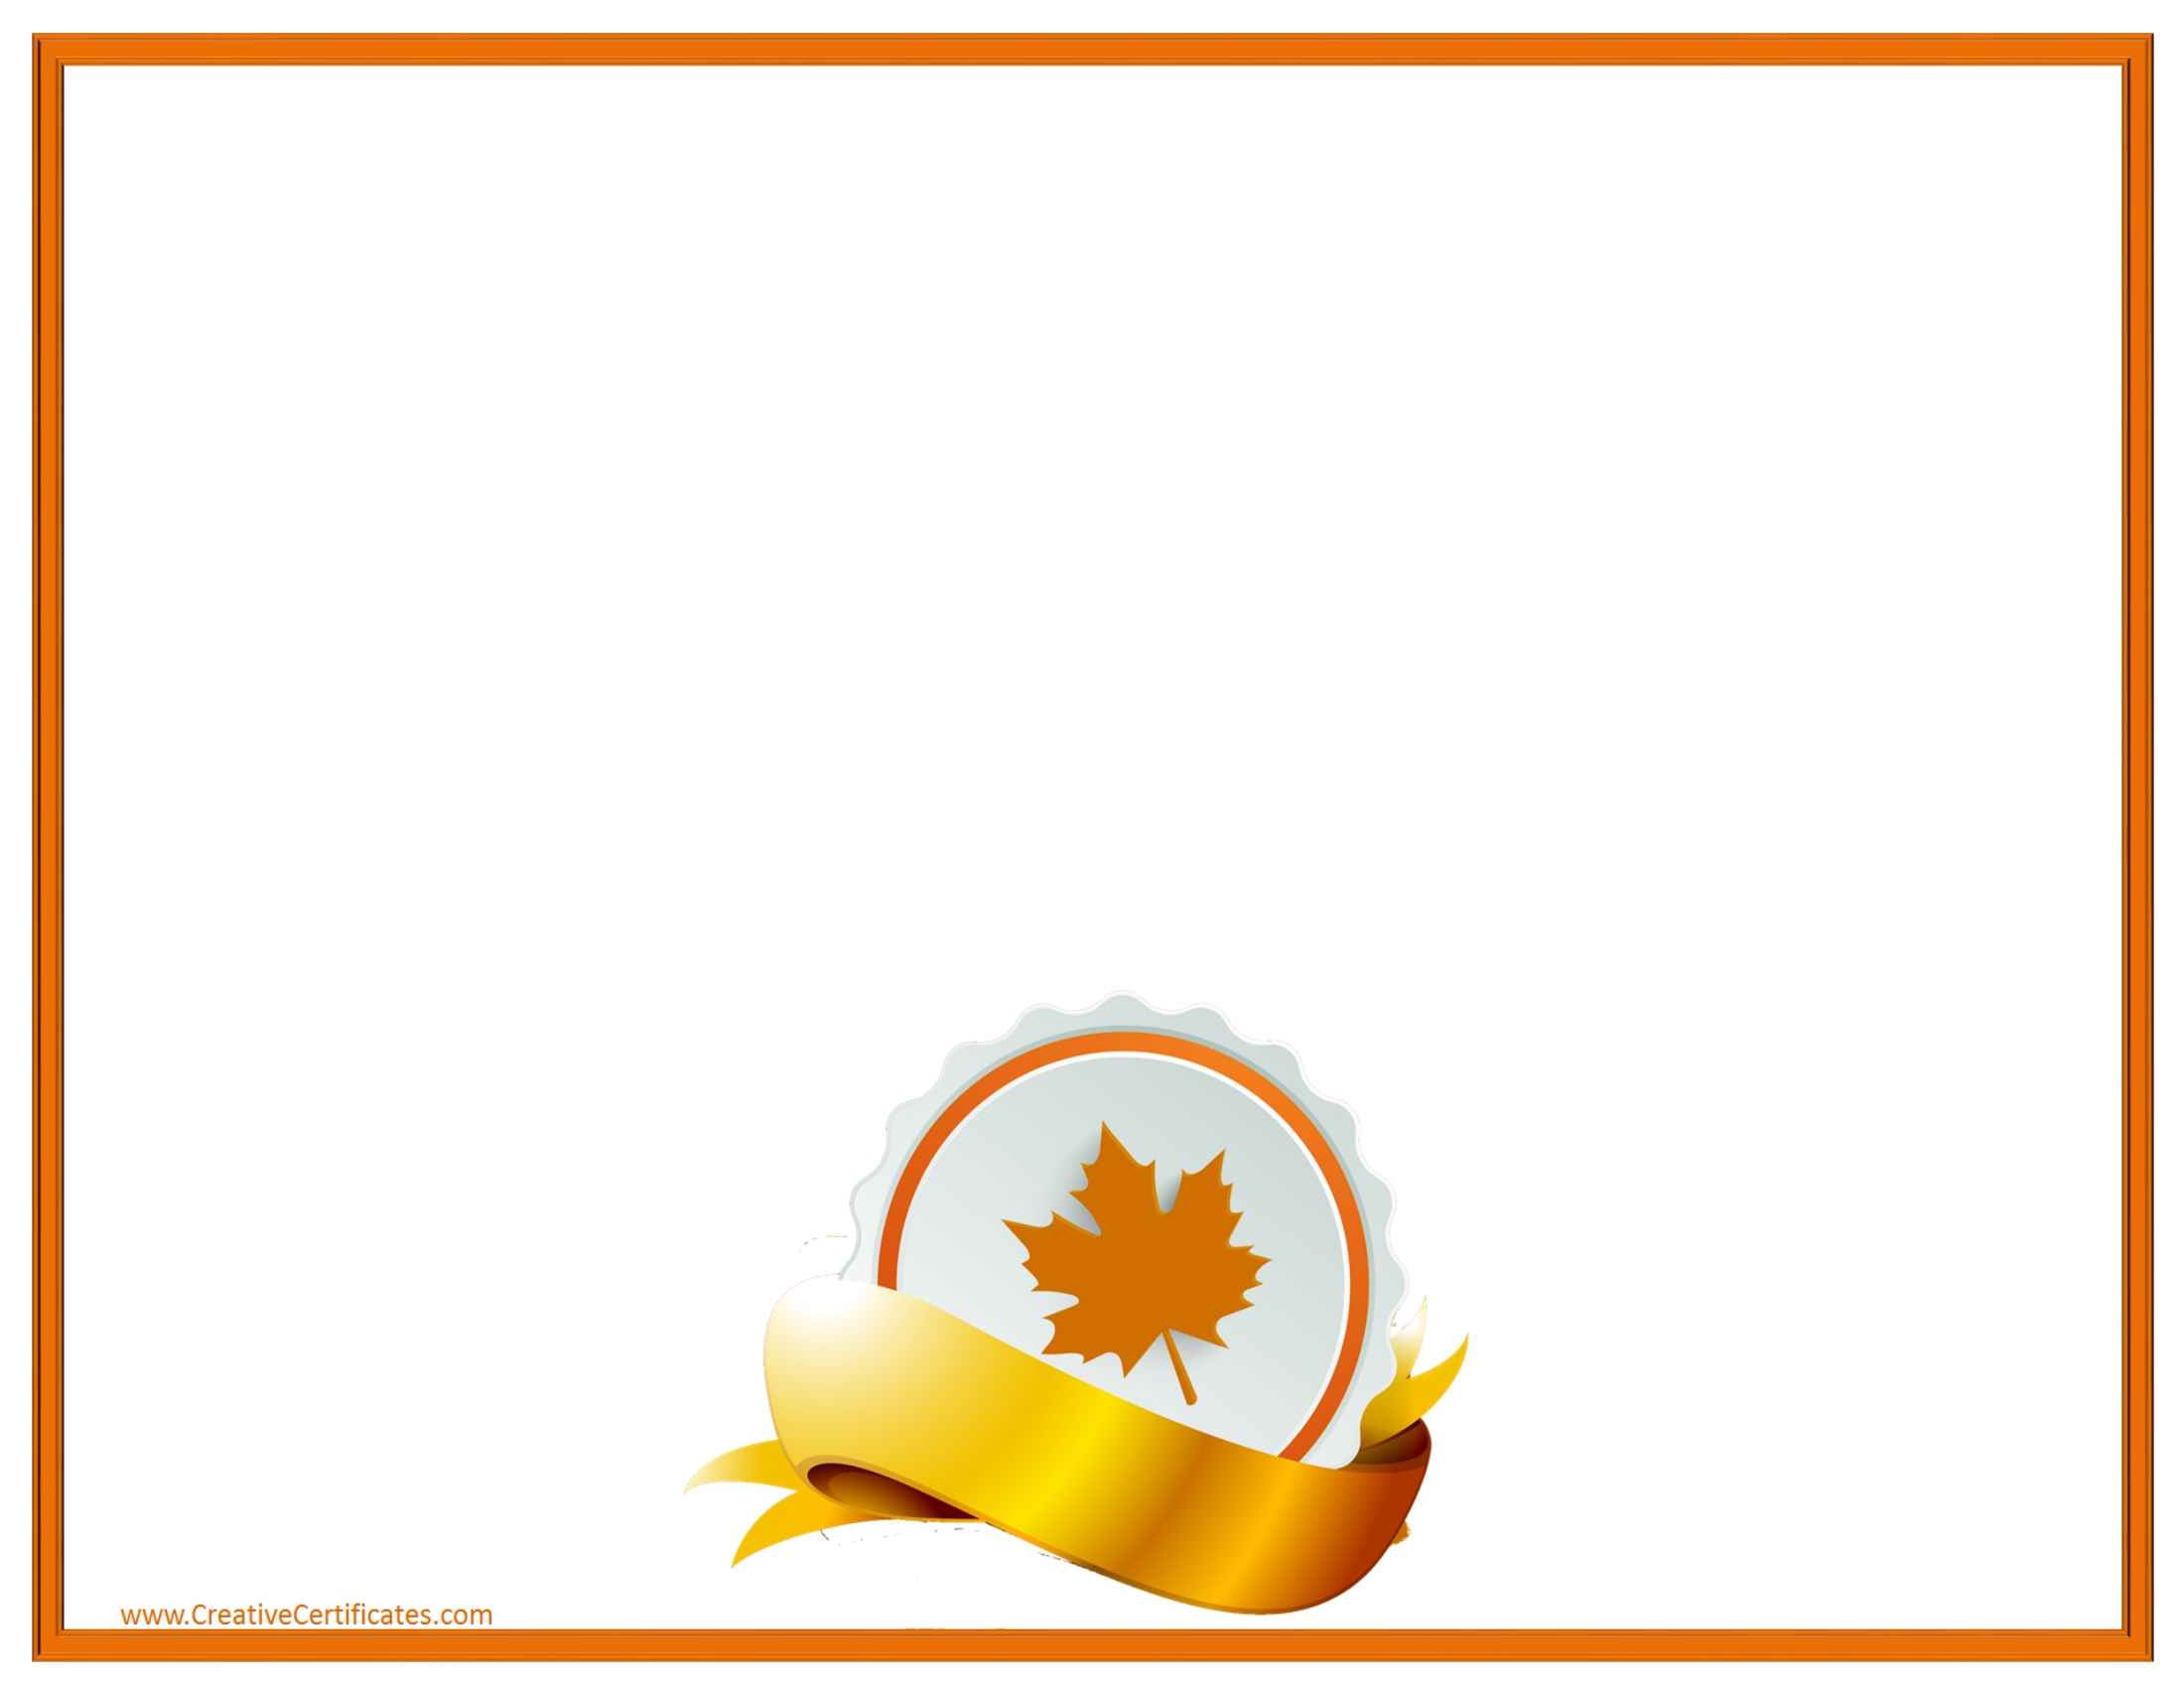 2200x1700 Thanksgiving border images free thanksgiving borders 10